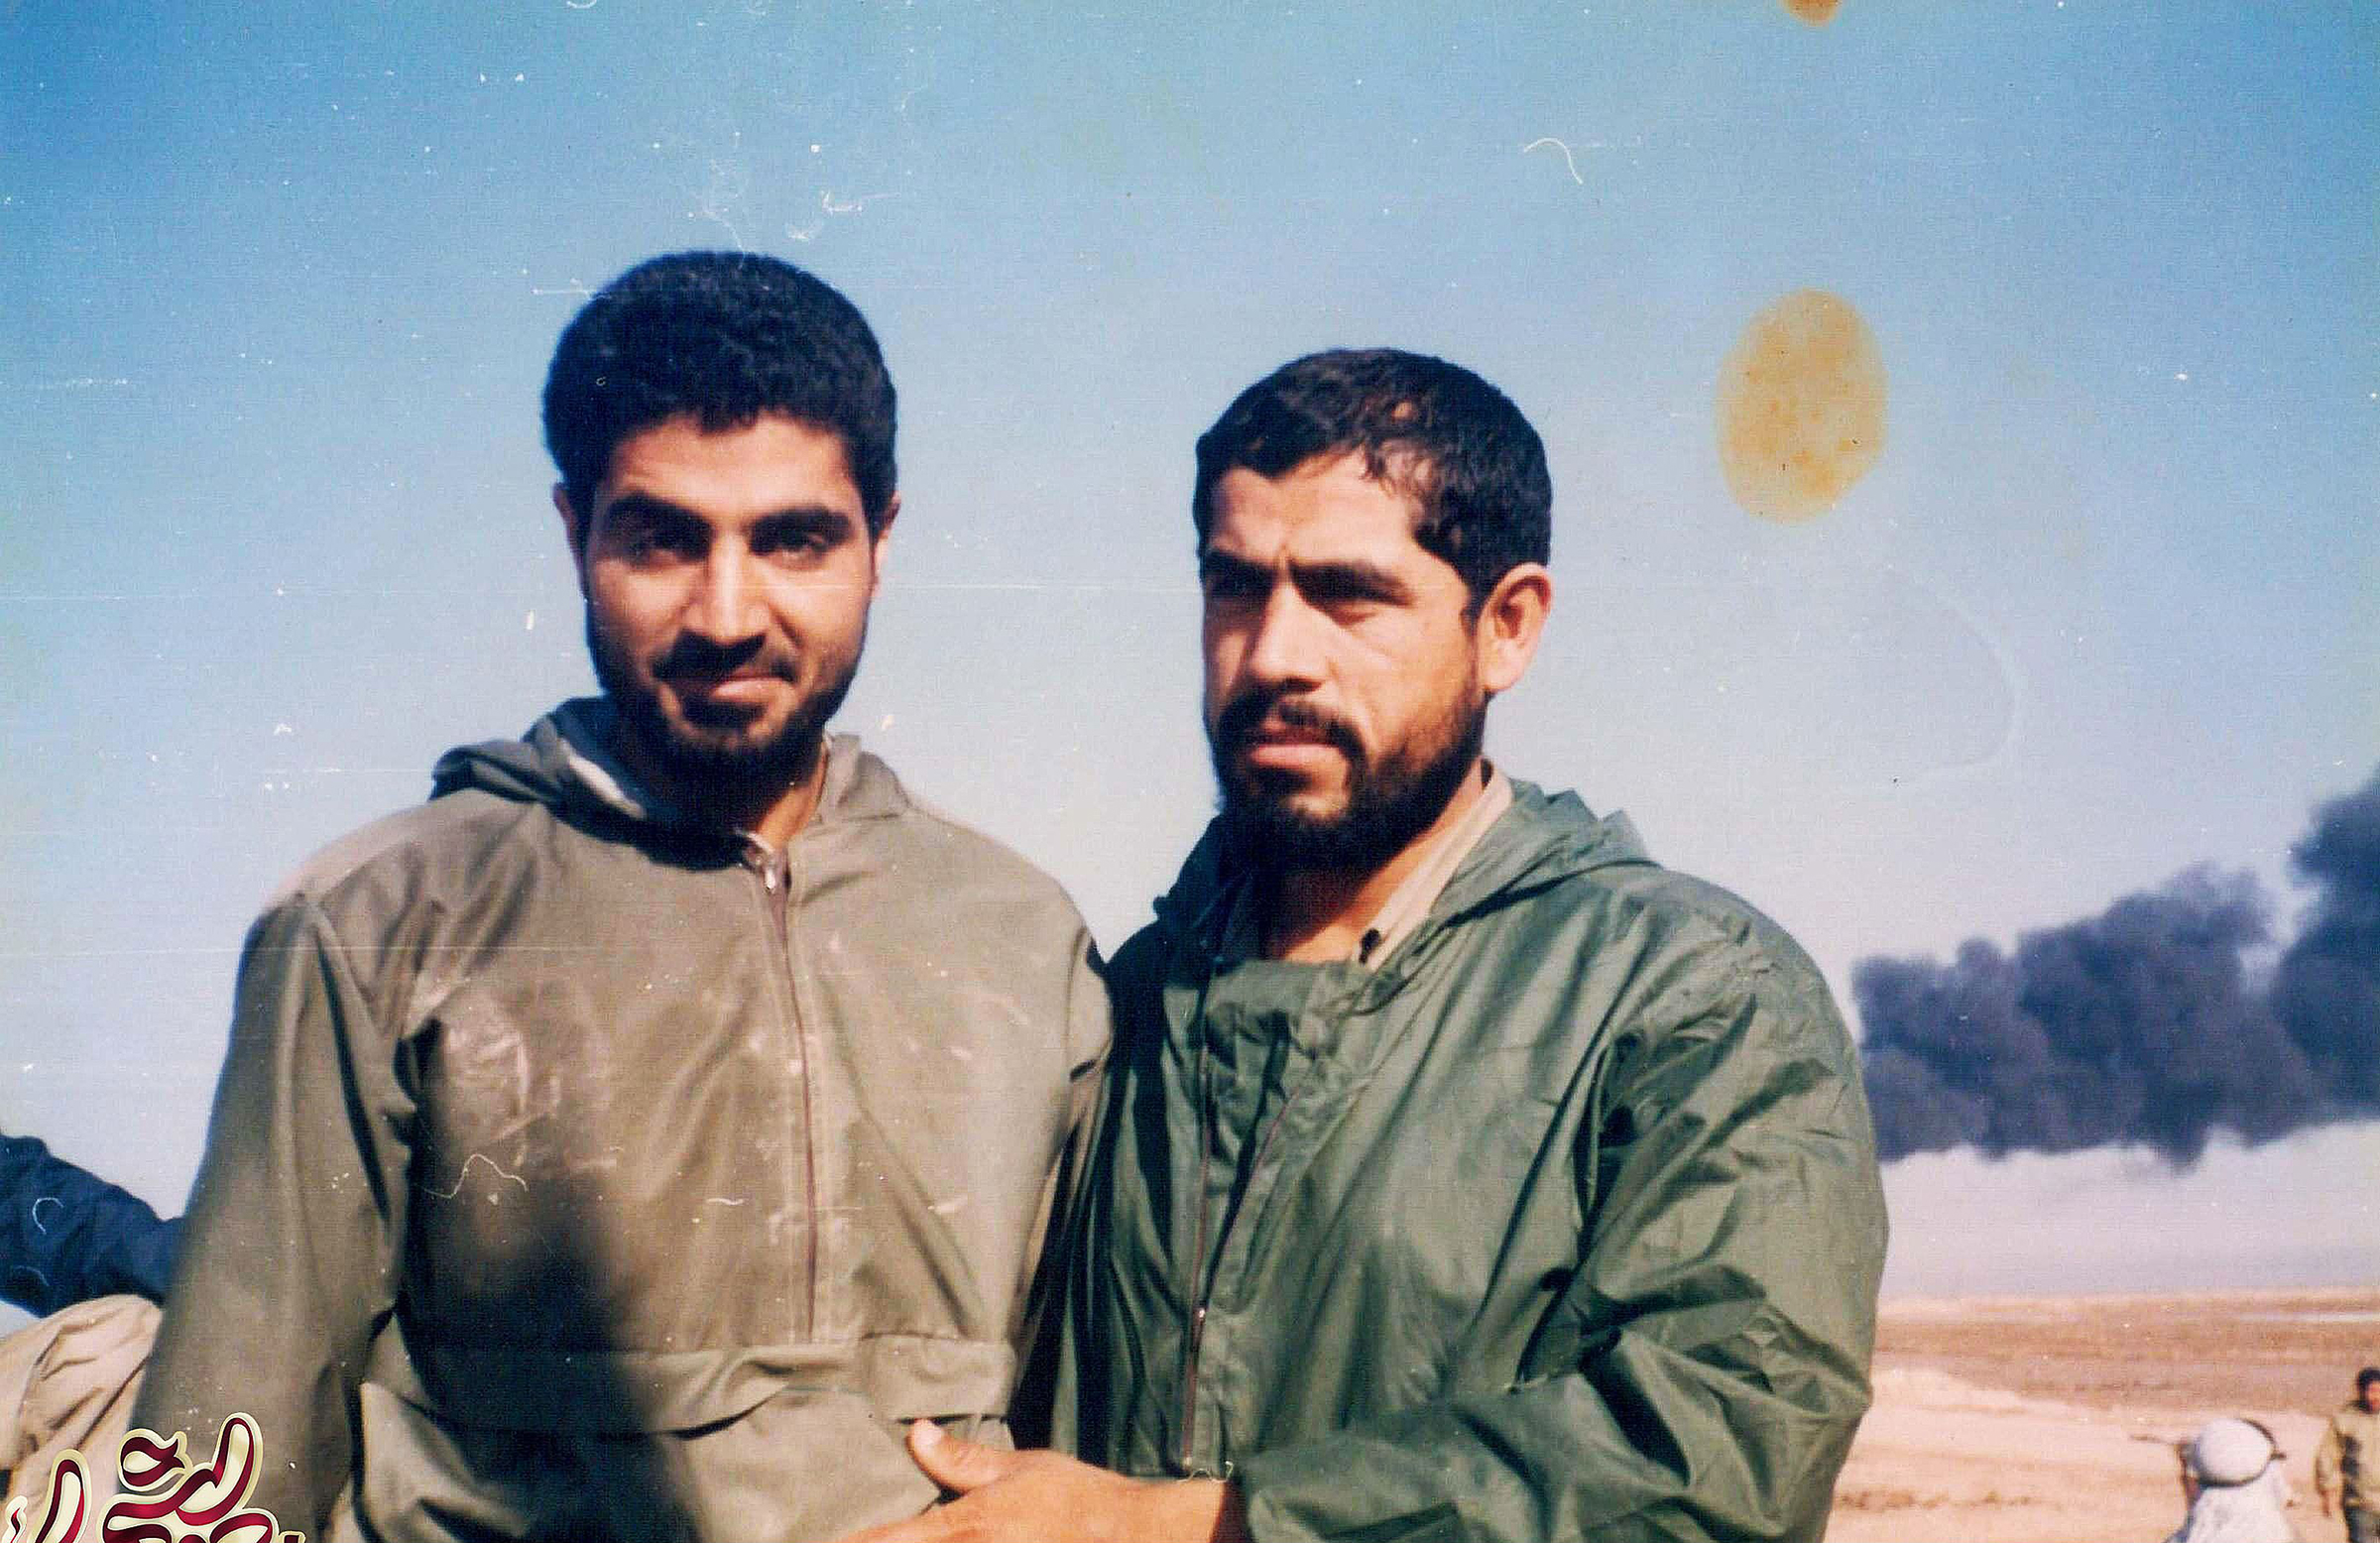 Qasem Soleimani during the Iran-Iraq war in the early 1980s.